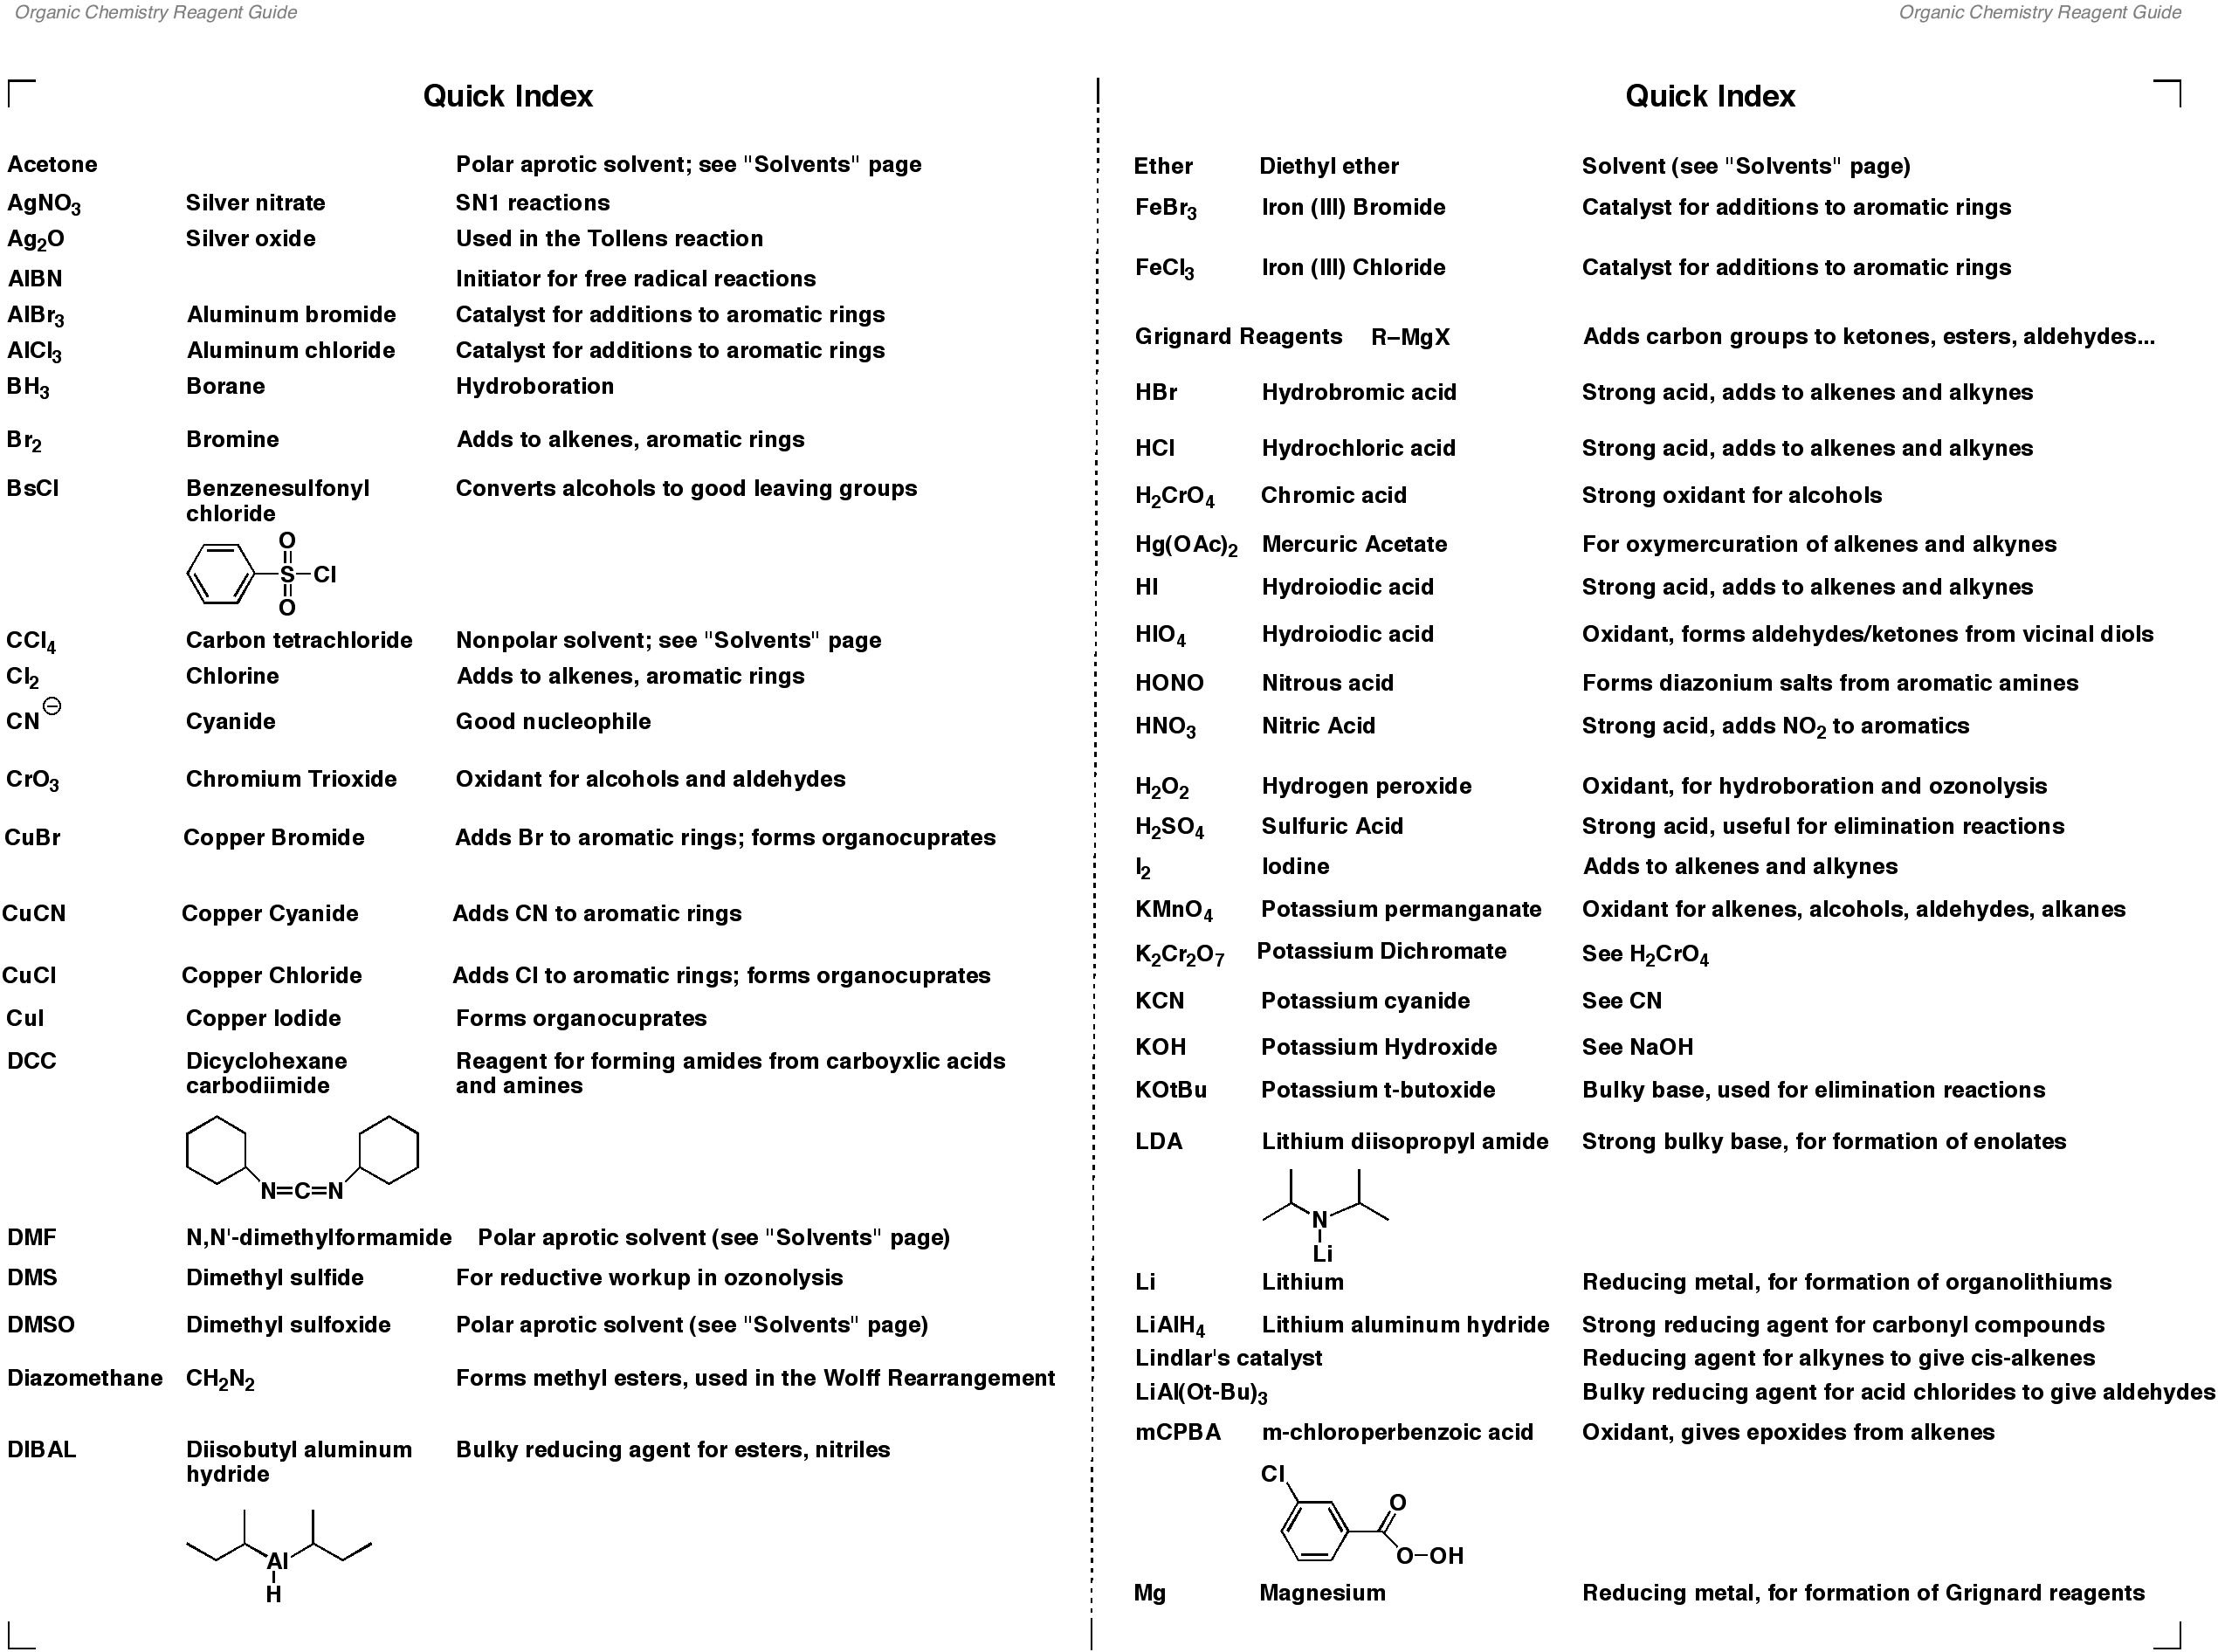 The Organic Chemistry Reagent Guide